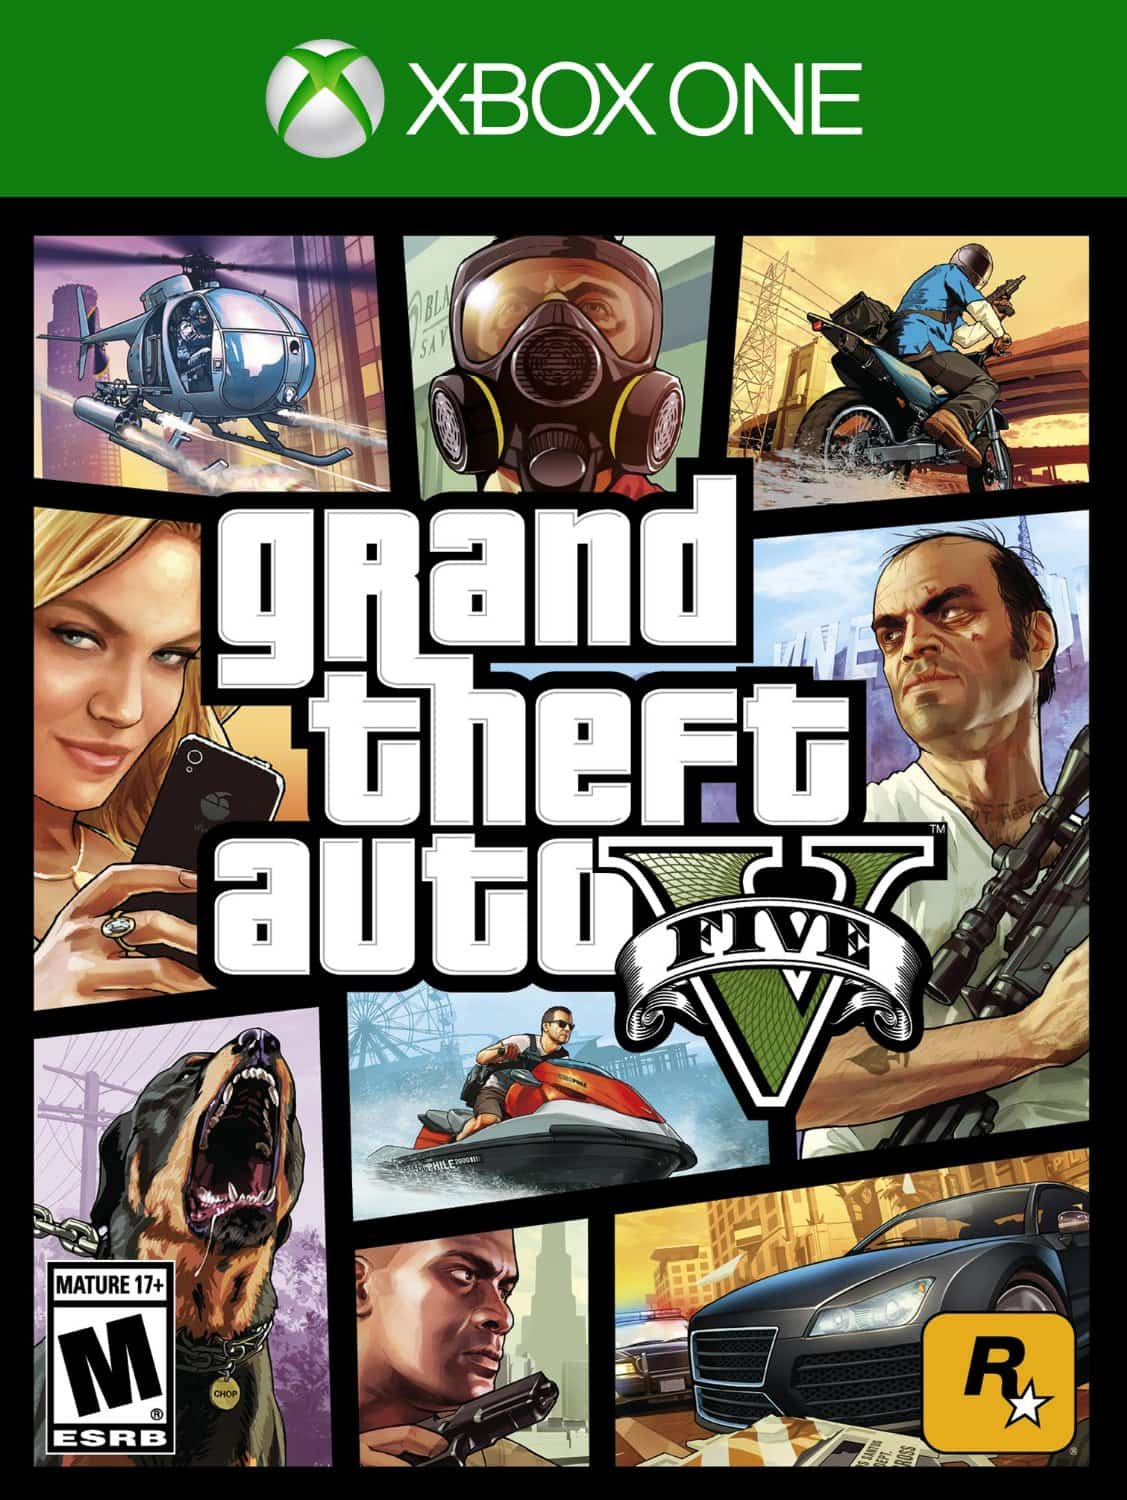 gta v and online cash free with xbox one bundles gta 5 cheats. Black Bedroom Furniture Sets. Home Design Ideas